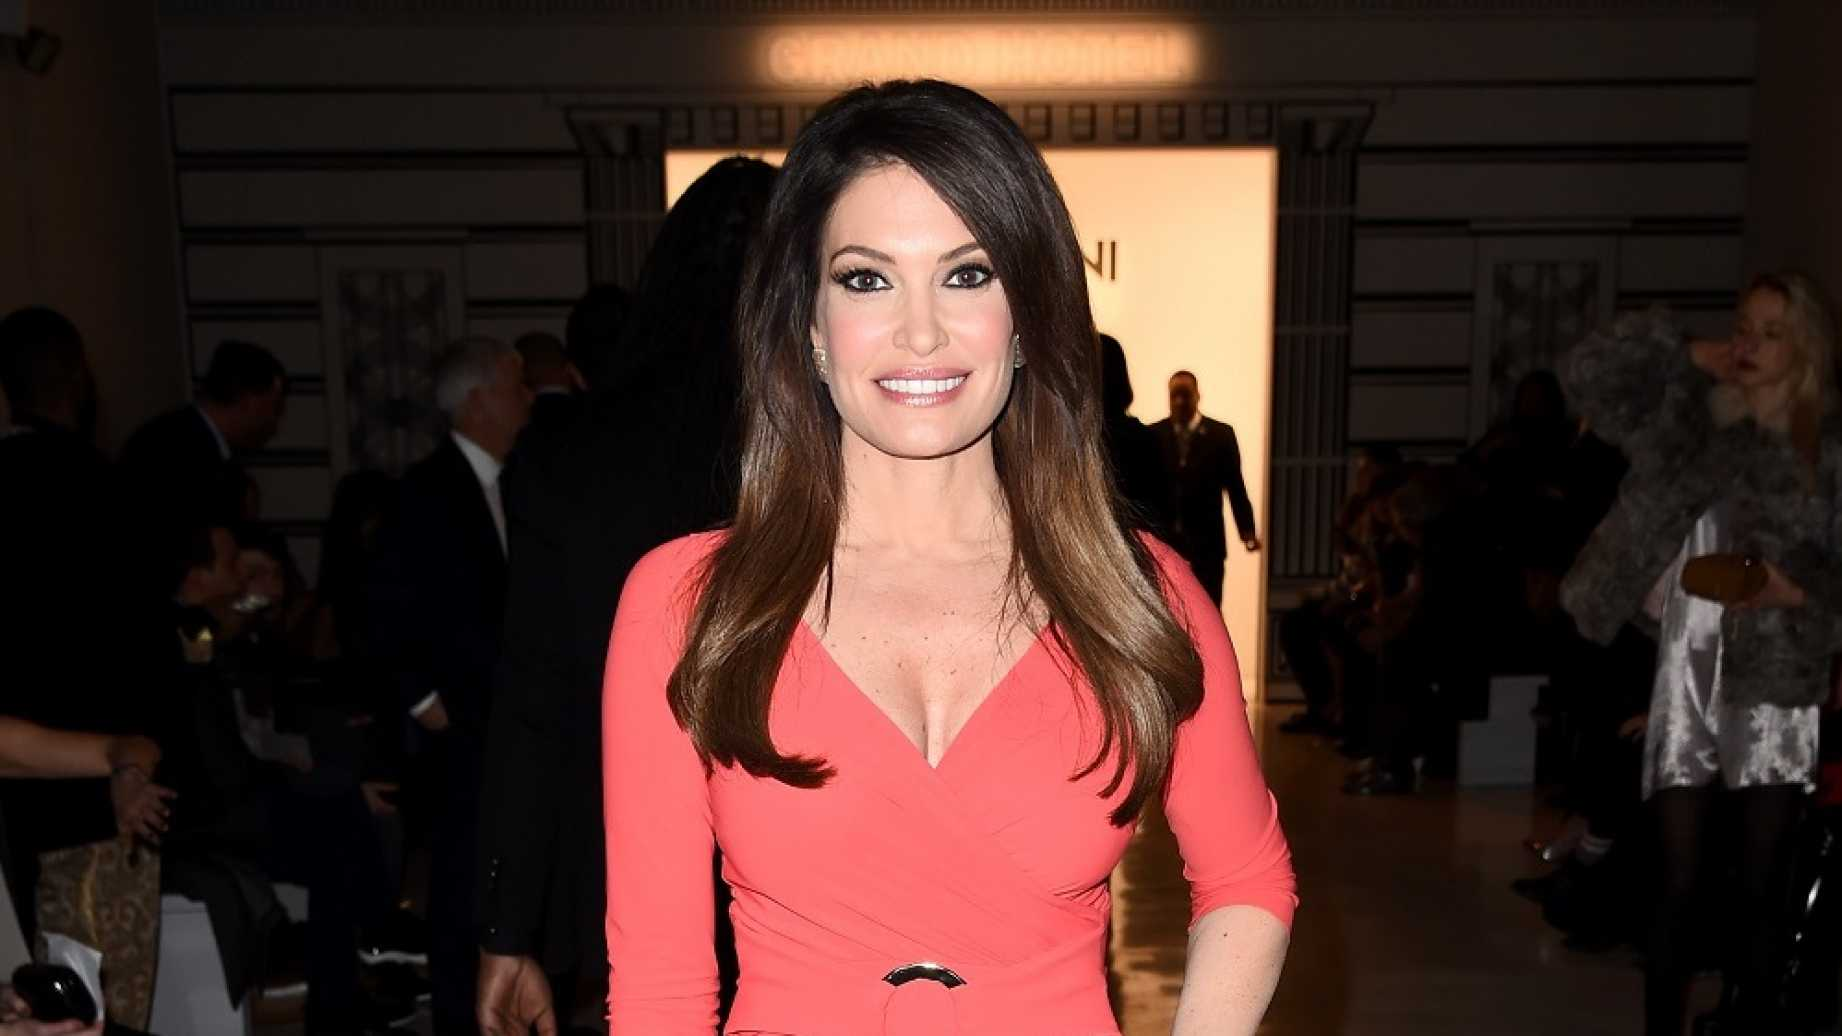 Donald Trump Jr's Girlfriend Kimberly Guilfoyle Married Life, Husband, Divorce, Son, Fox News, Sexual Allegation, Net Worth And Wiki!